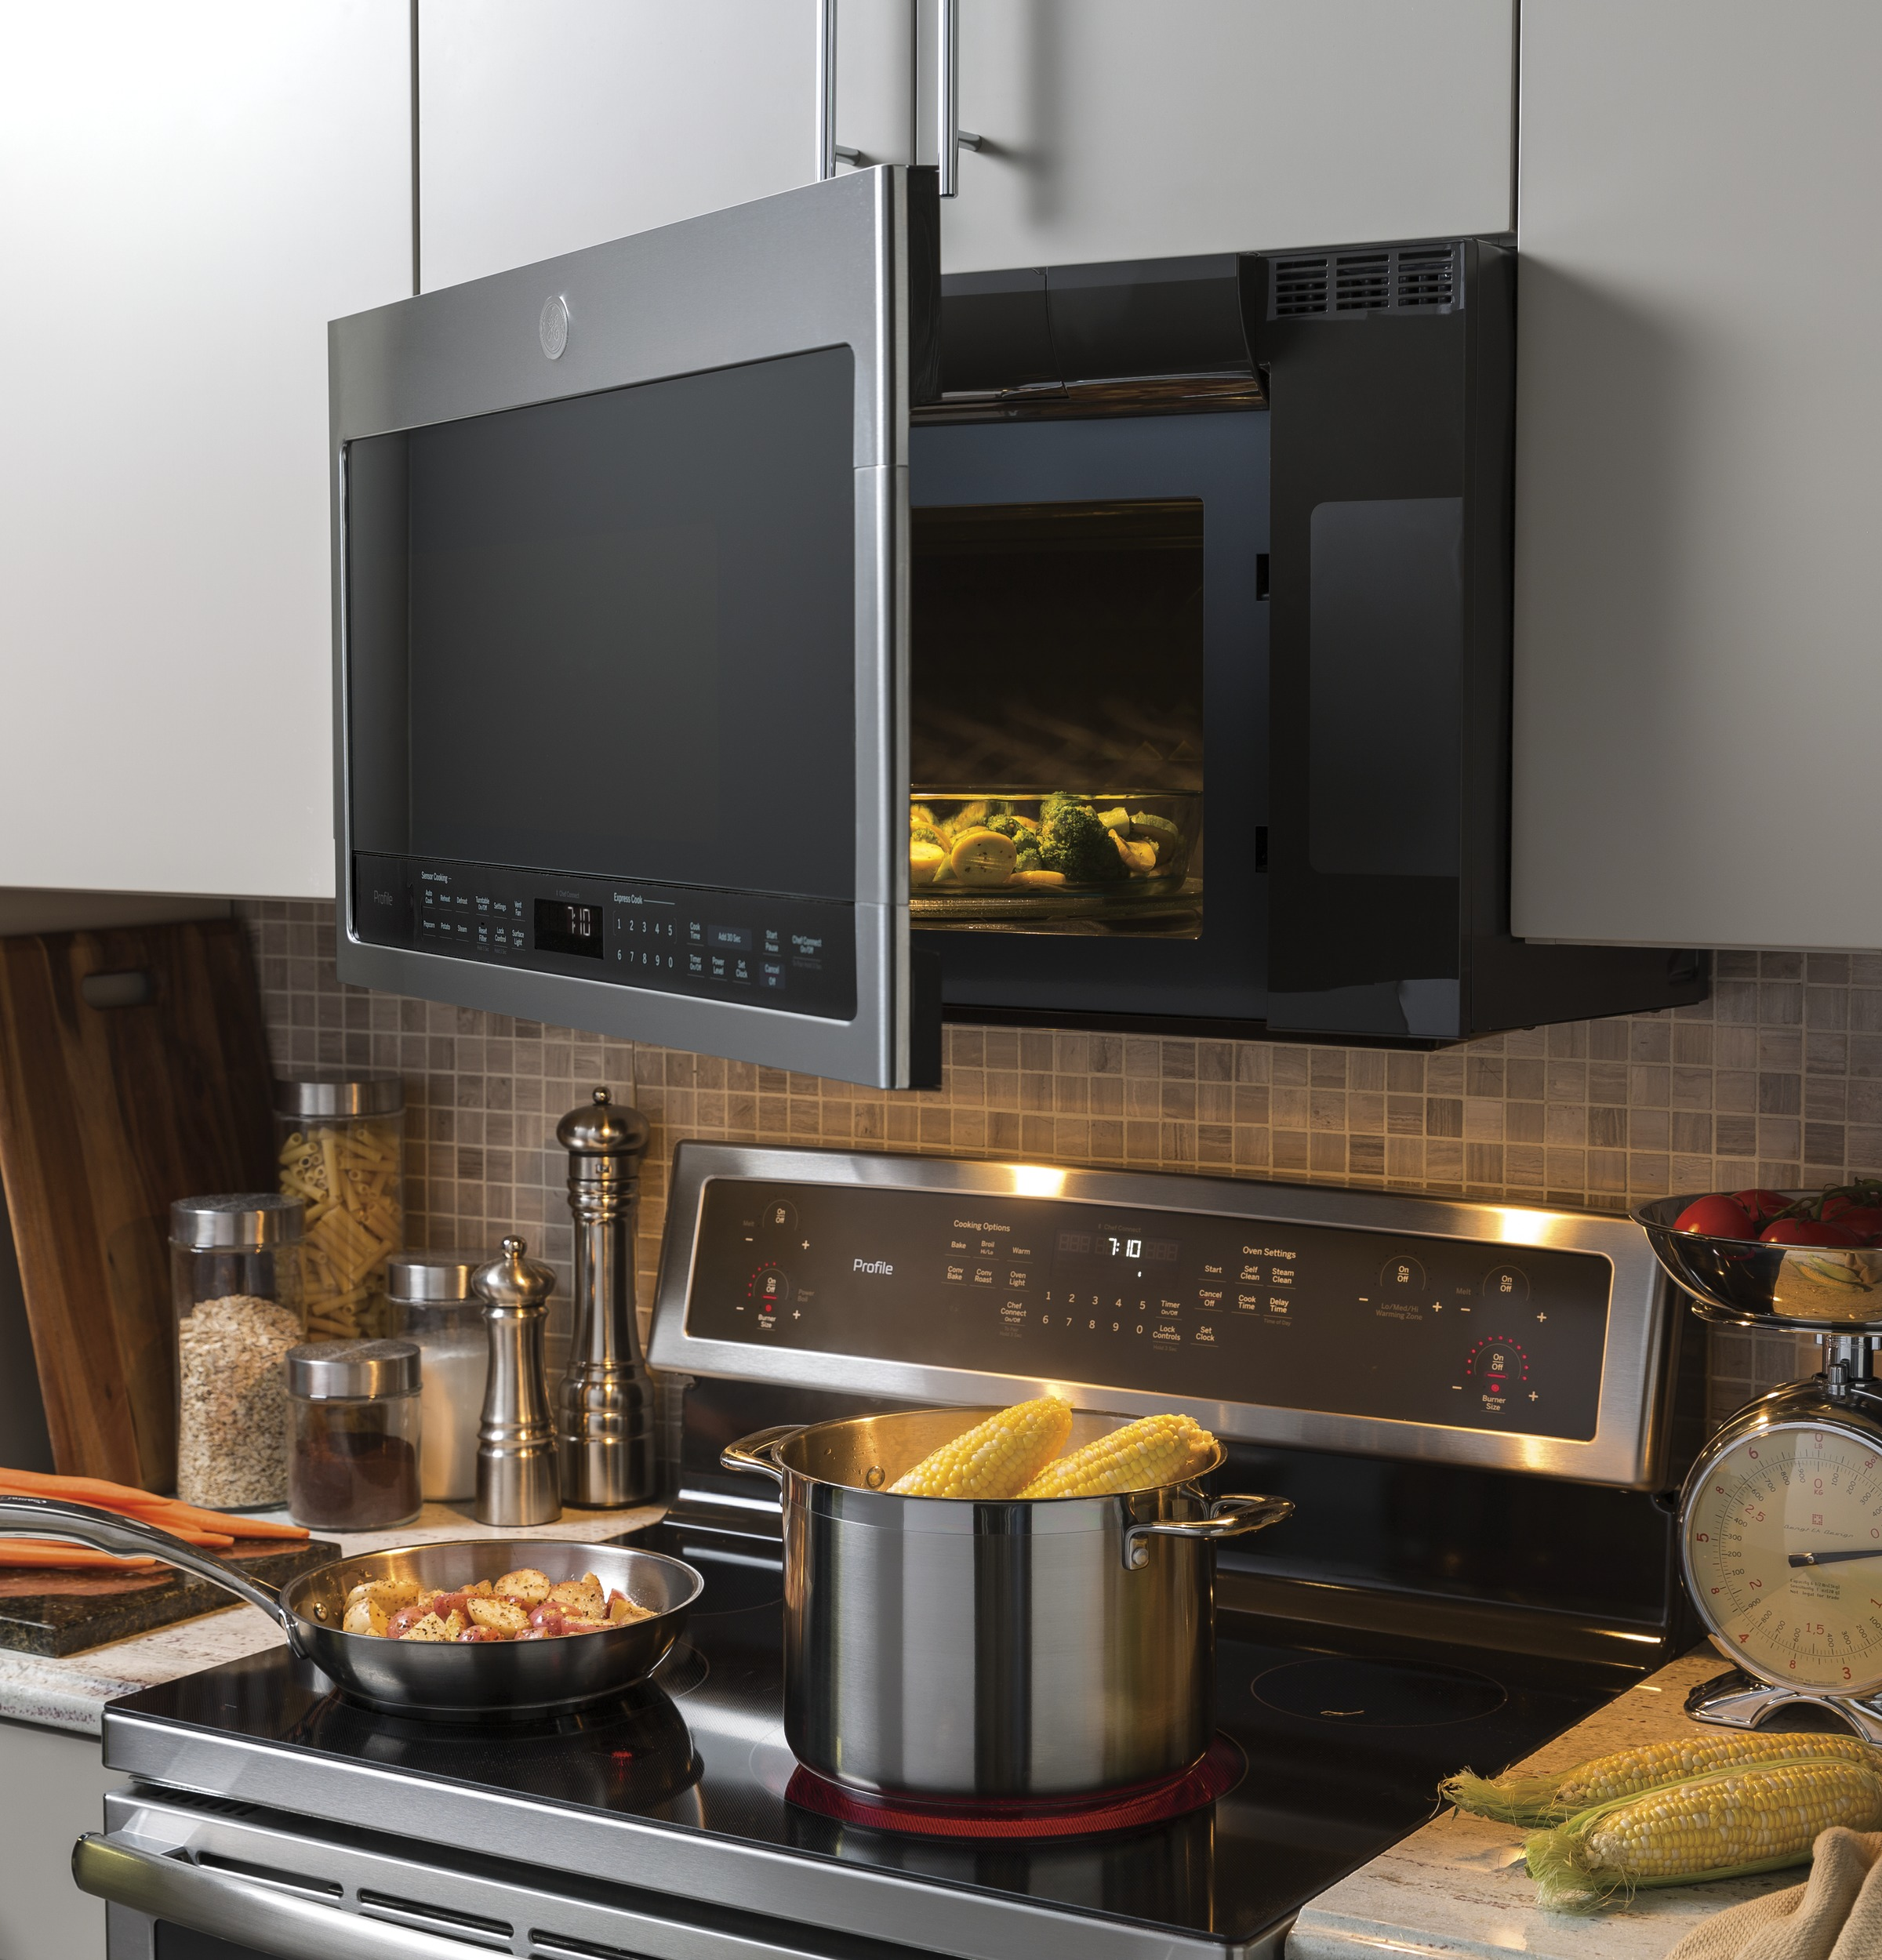 Model: PVM9005SJSS | GE Profile™ Series 2.1 Cu. Ft. Over-the-Range Sensor Microwave Oven